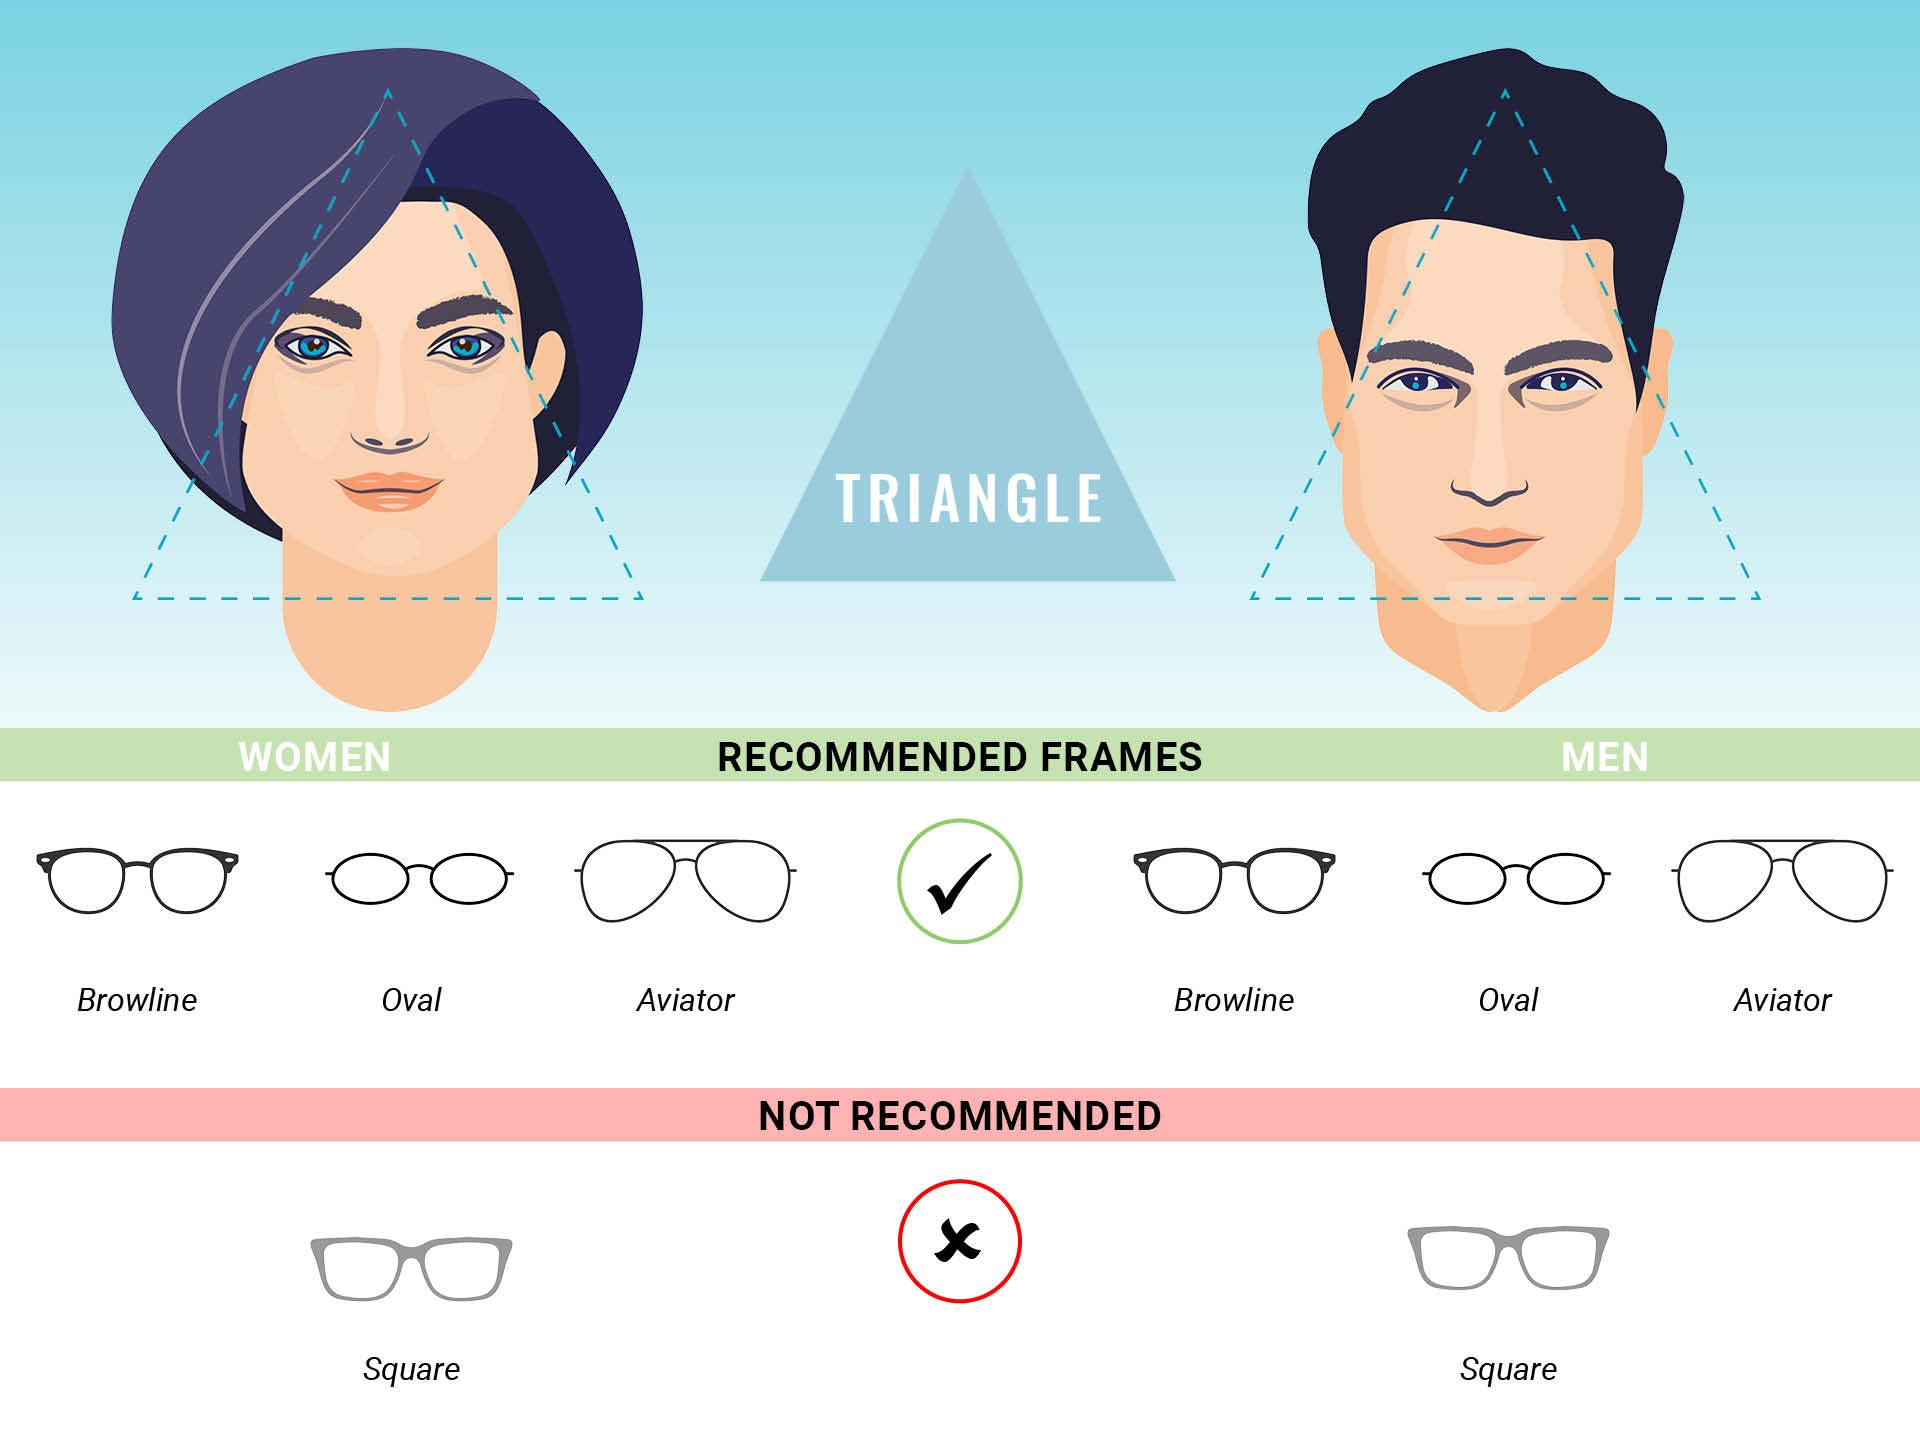 Eyeglass frame recommendations for triangle face shapes for men and women